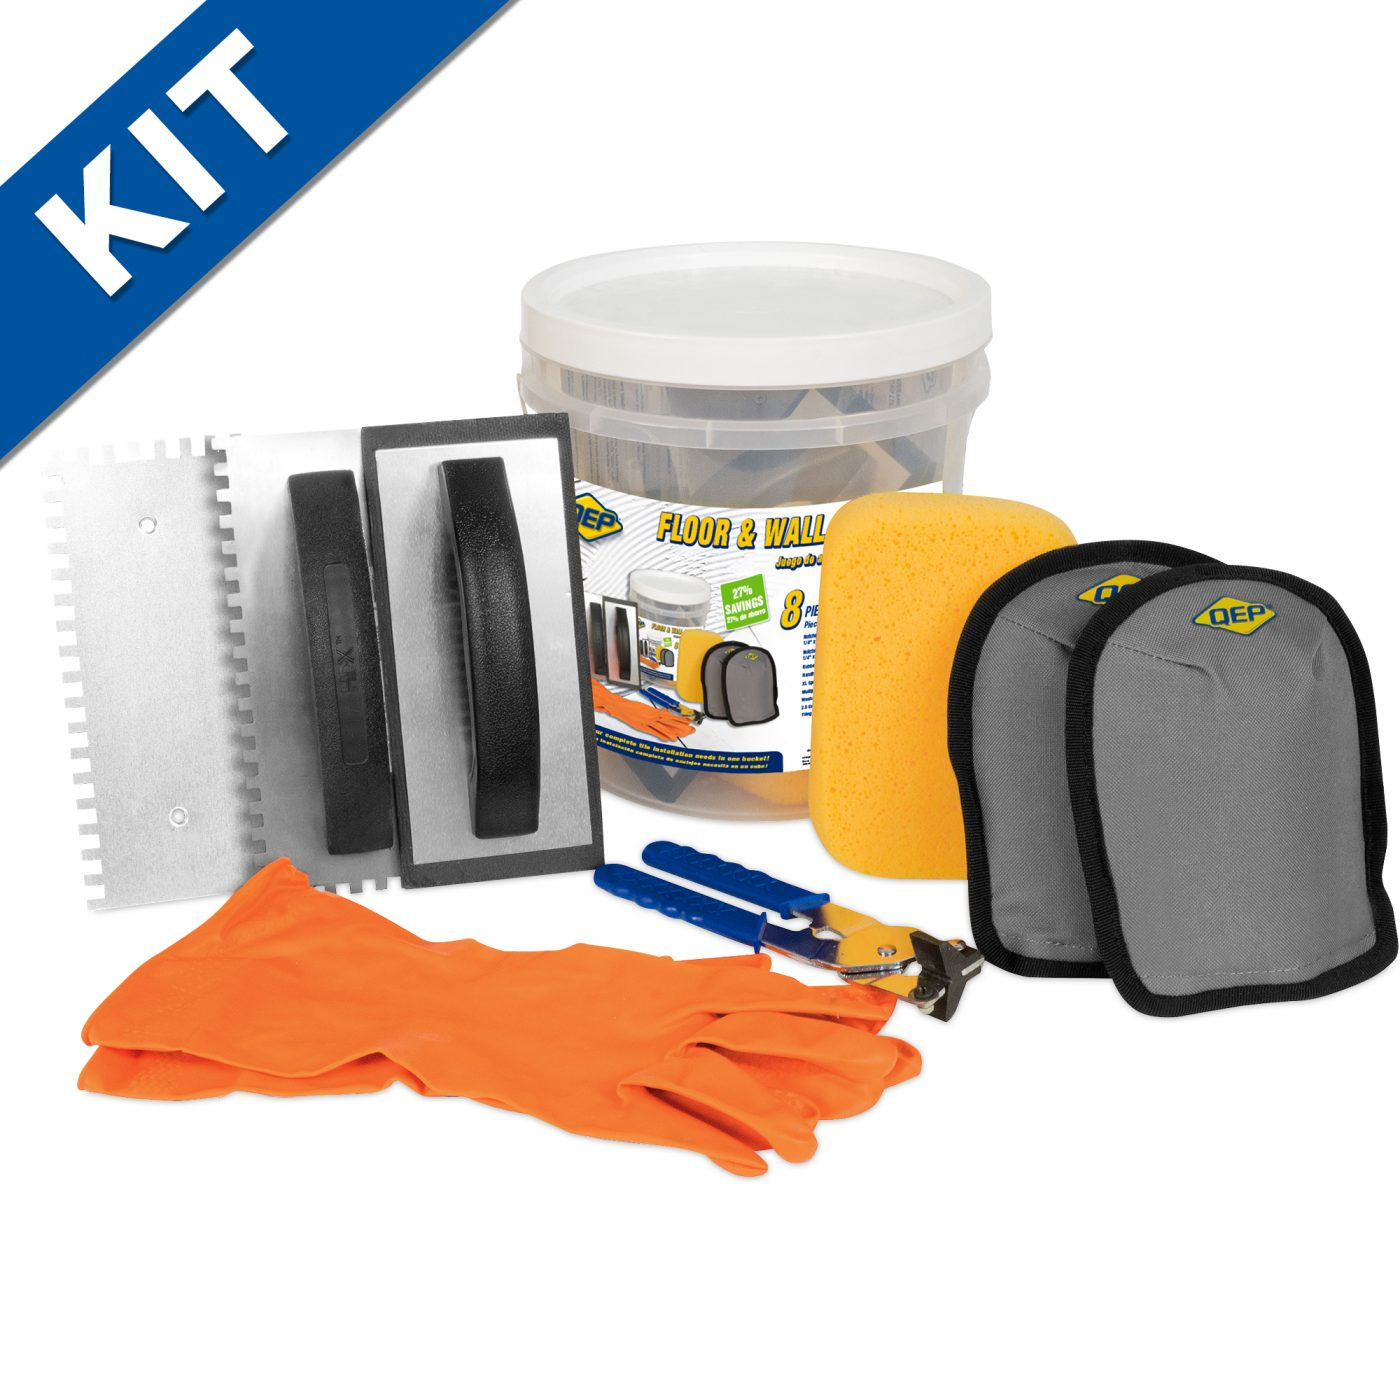 Floor & Wall Tile Installation Kit